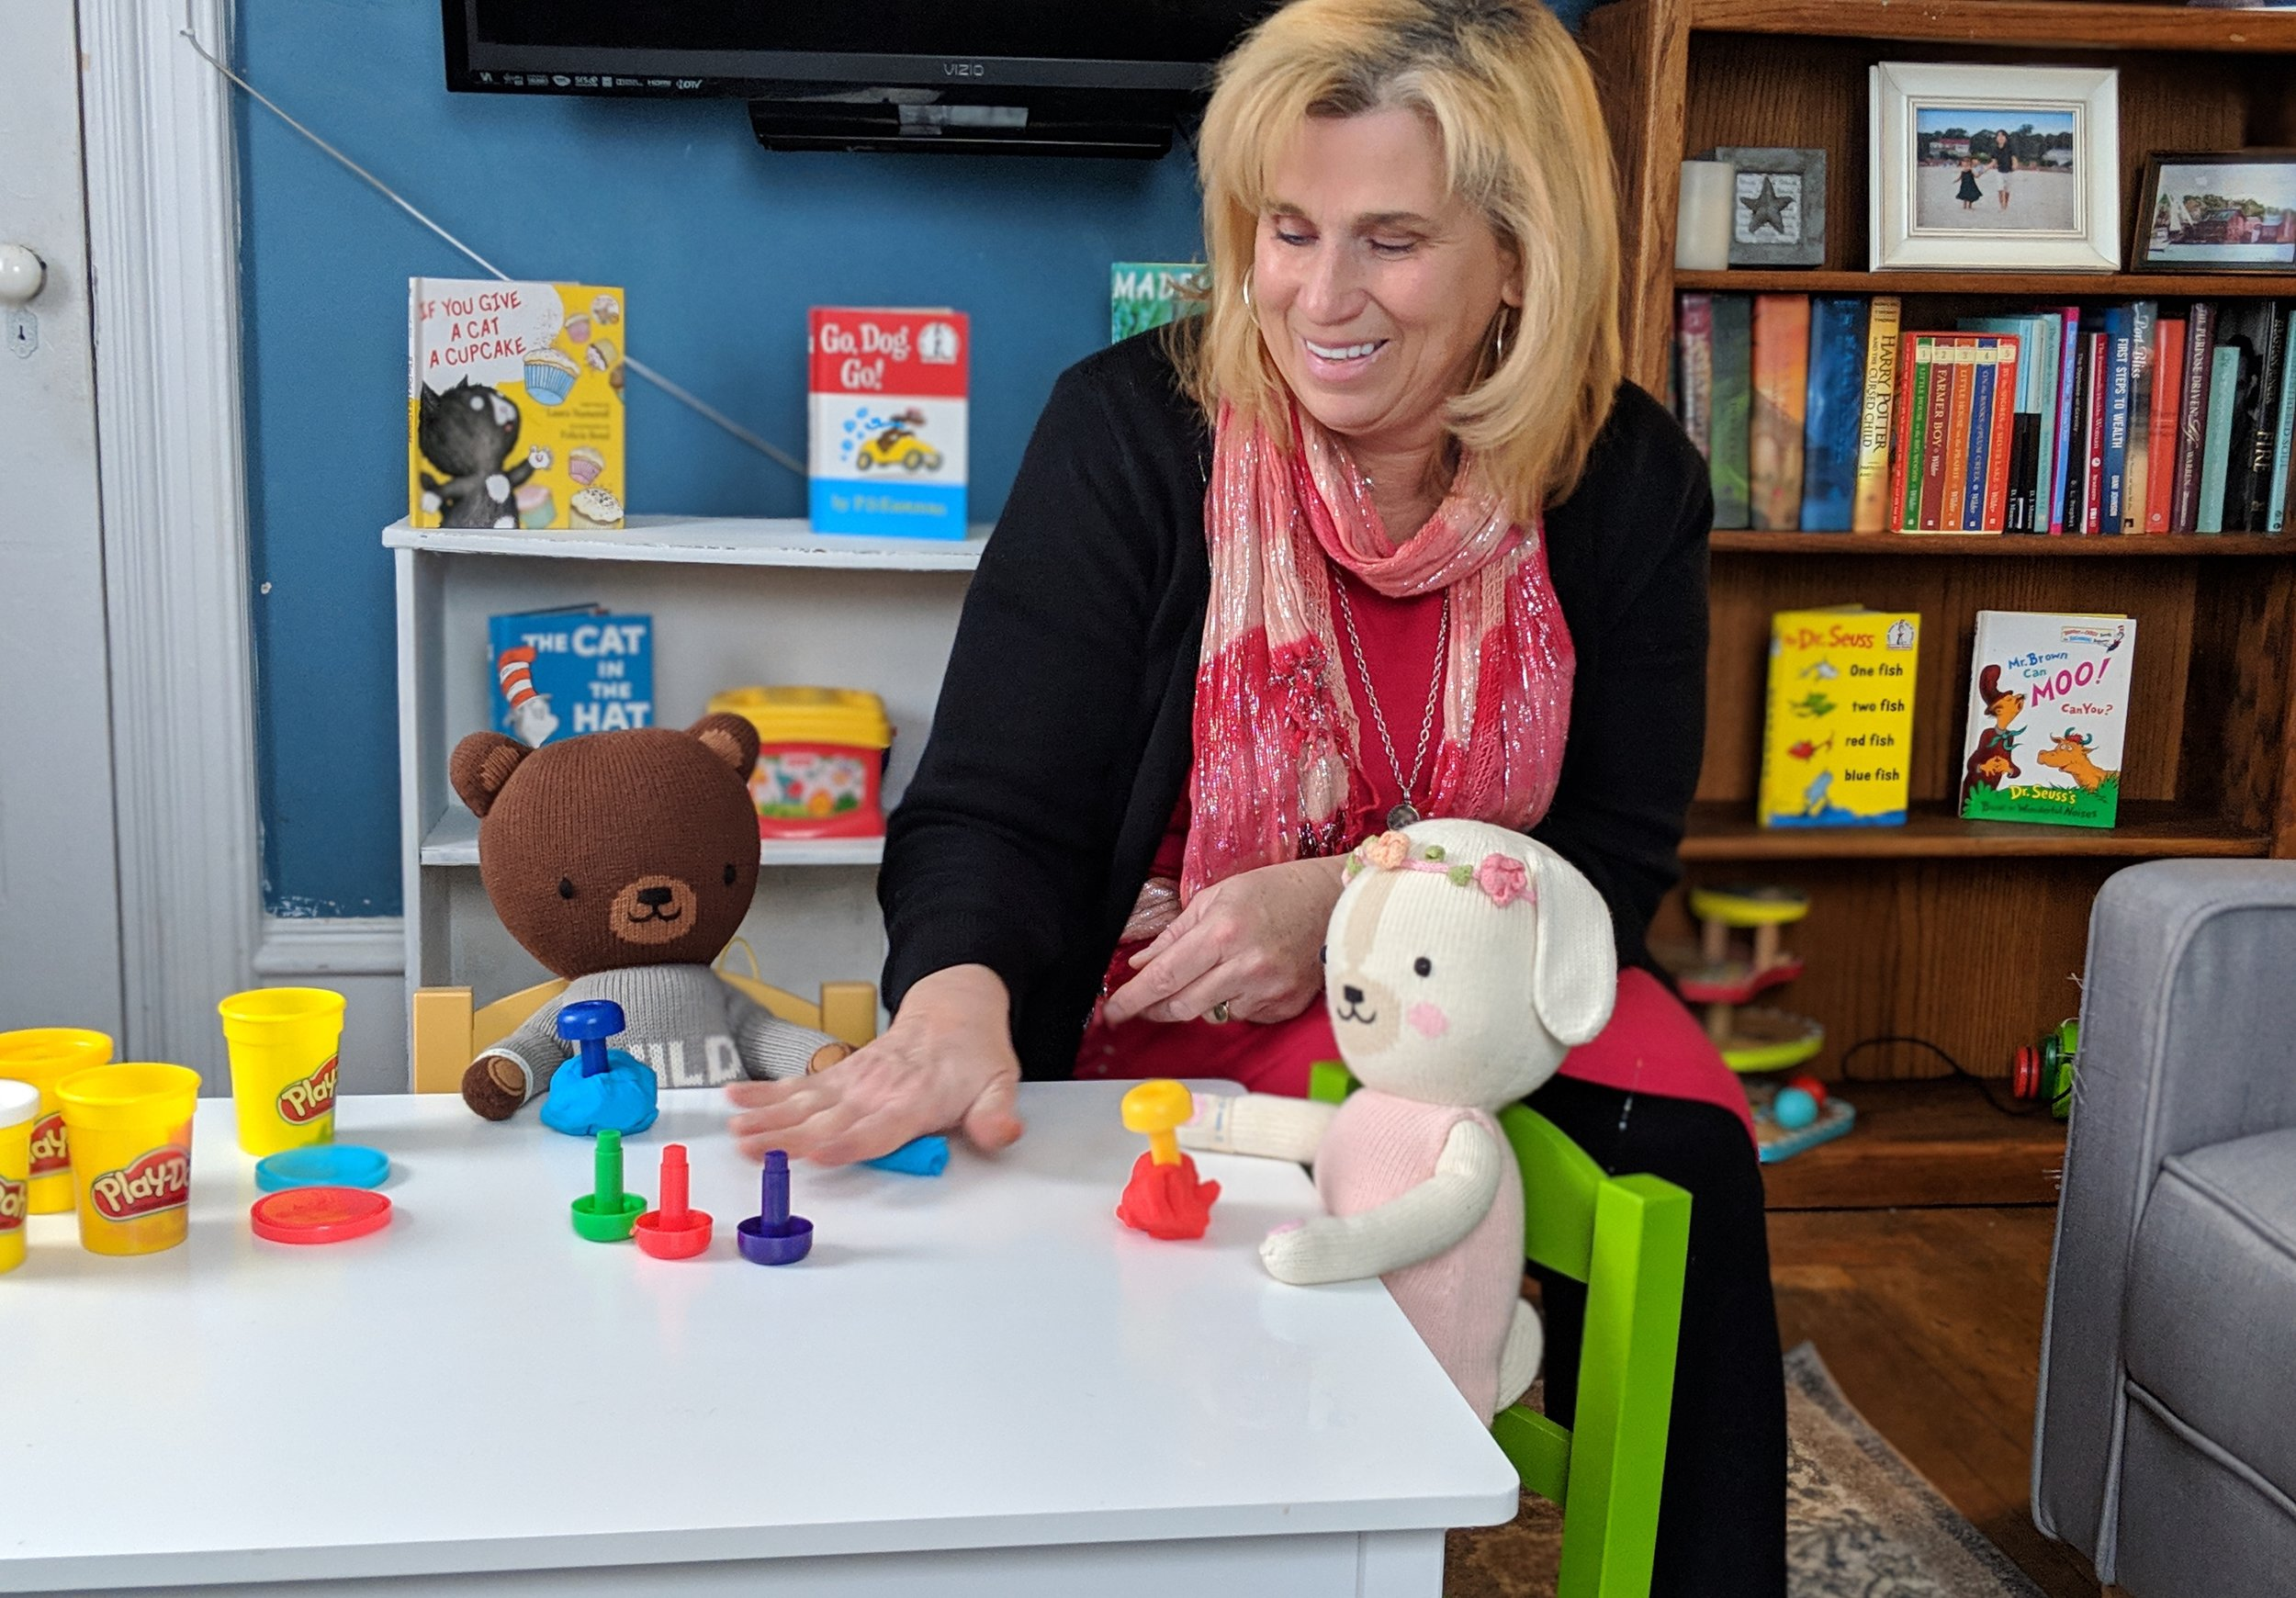 Deb Pacheco, licensed daycare provider, will open the Wee Play Infant Toddler Development in Gloucester, MA this spring